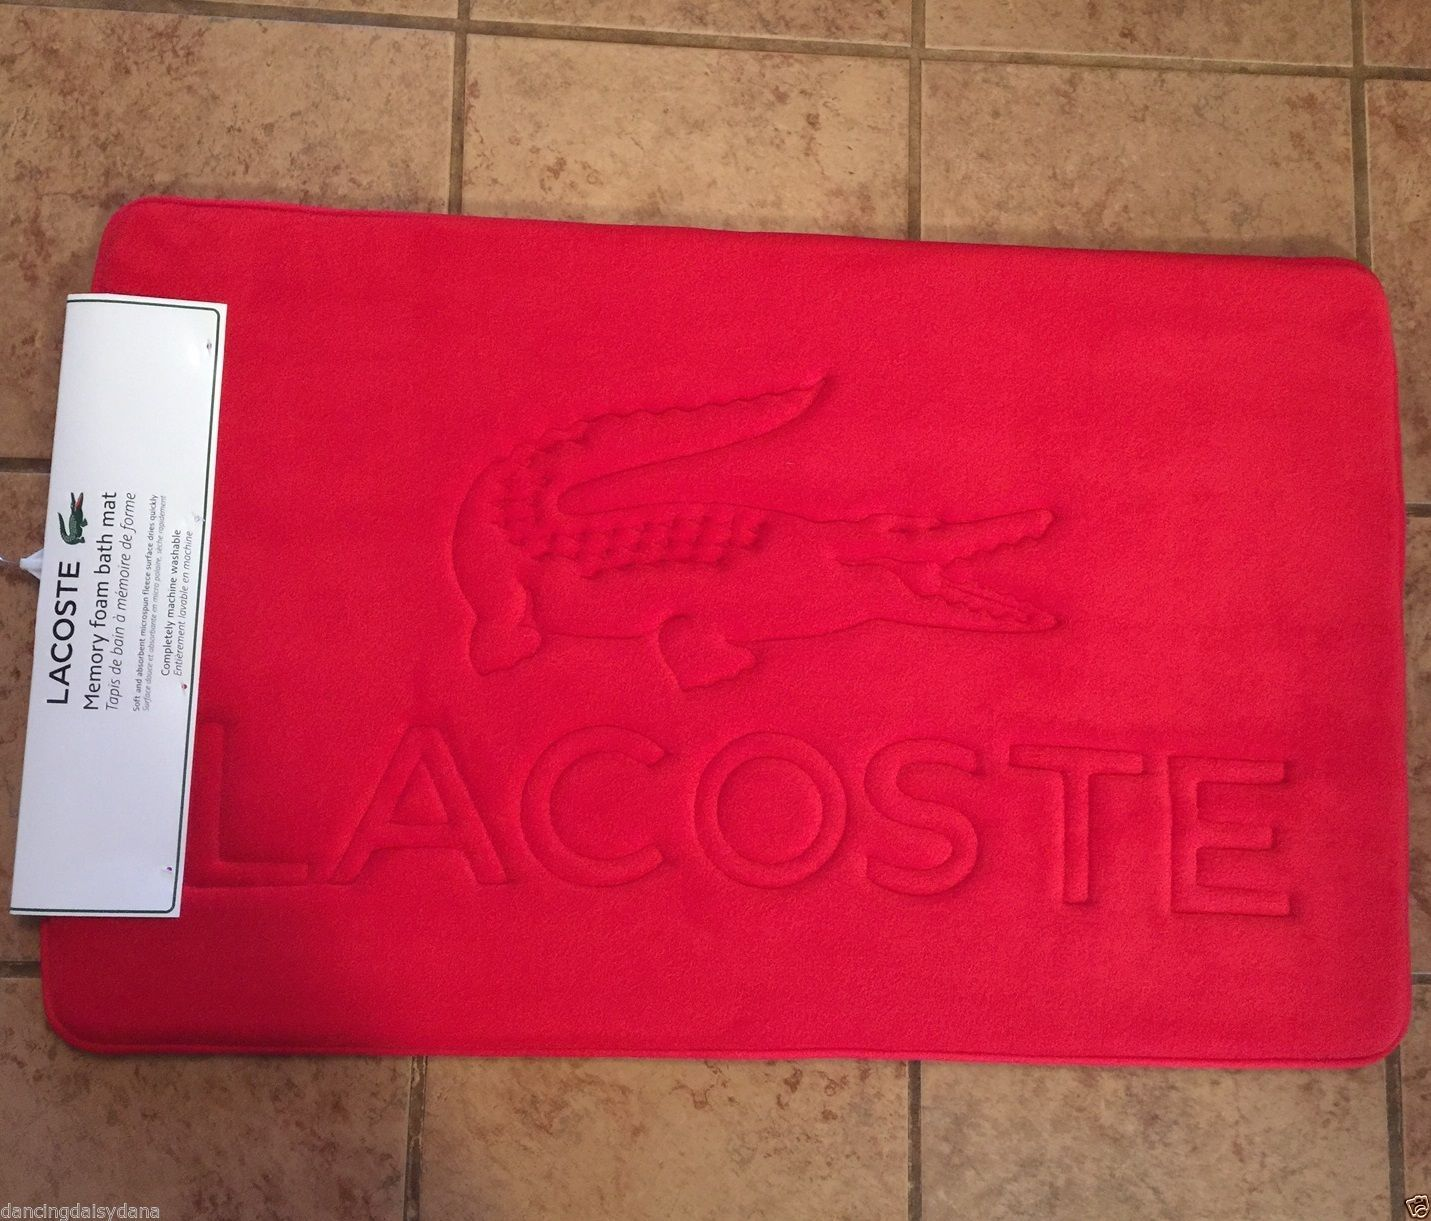 Red Lacoste Alligator Memory Foam Bath Mat Rug 21 X34 Formula 1 New Free Sh View More On The Link Htt Memory Foam Bath Mats Bath Mat Rug Foam Bath Mats